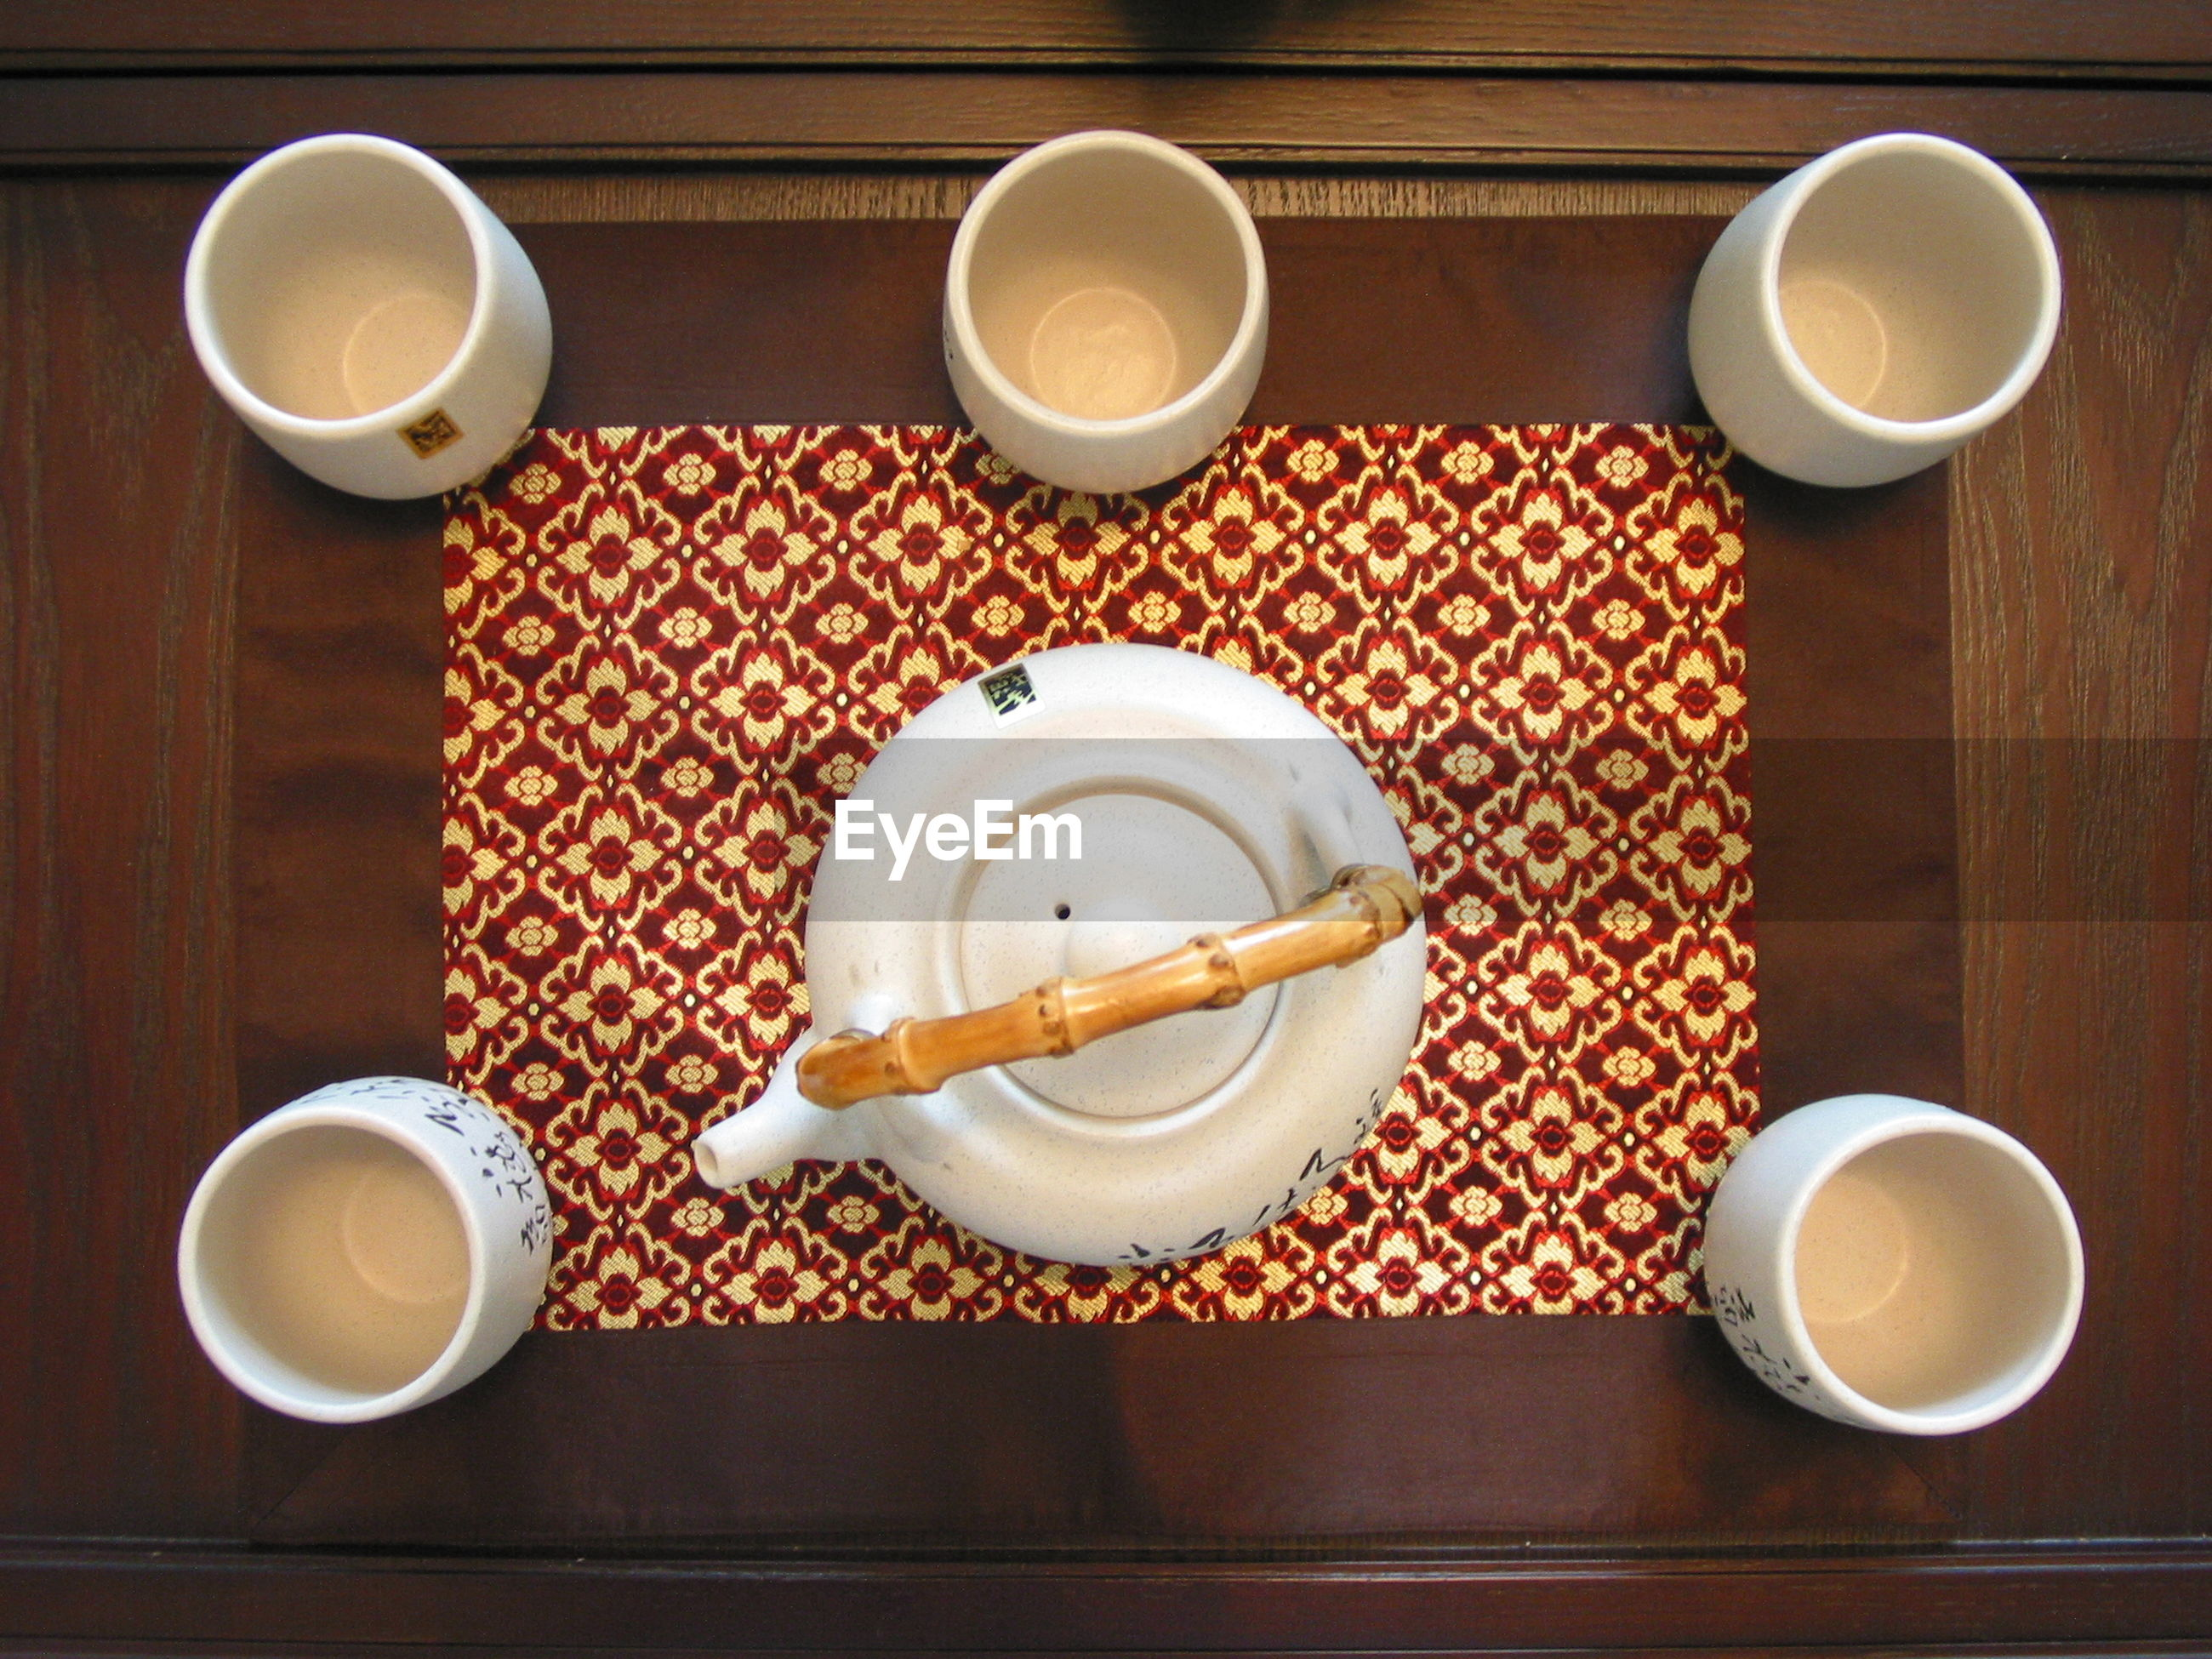 HIGH ANGLE VIEW OF TEA CUP ON TABLE WITH SPOON